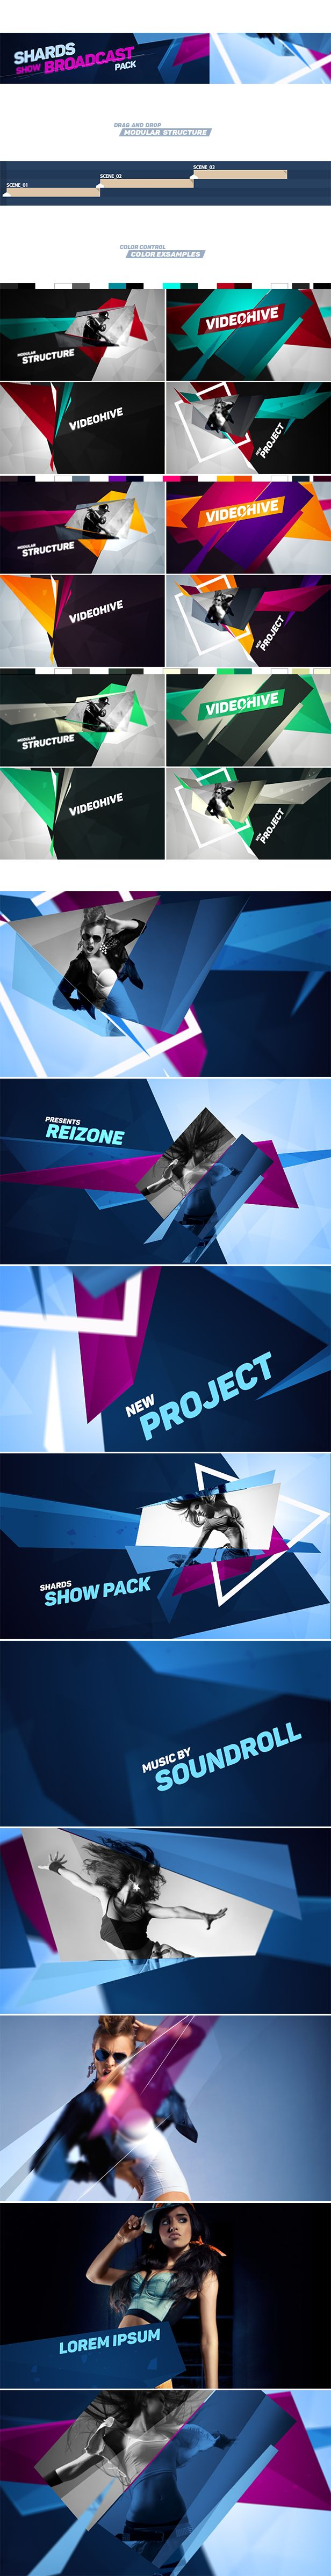 Shards Show Pack - After Effects Project Files | VideoHive